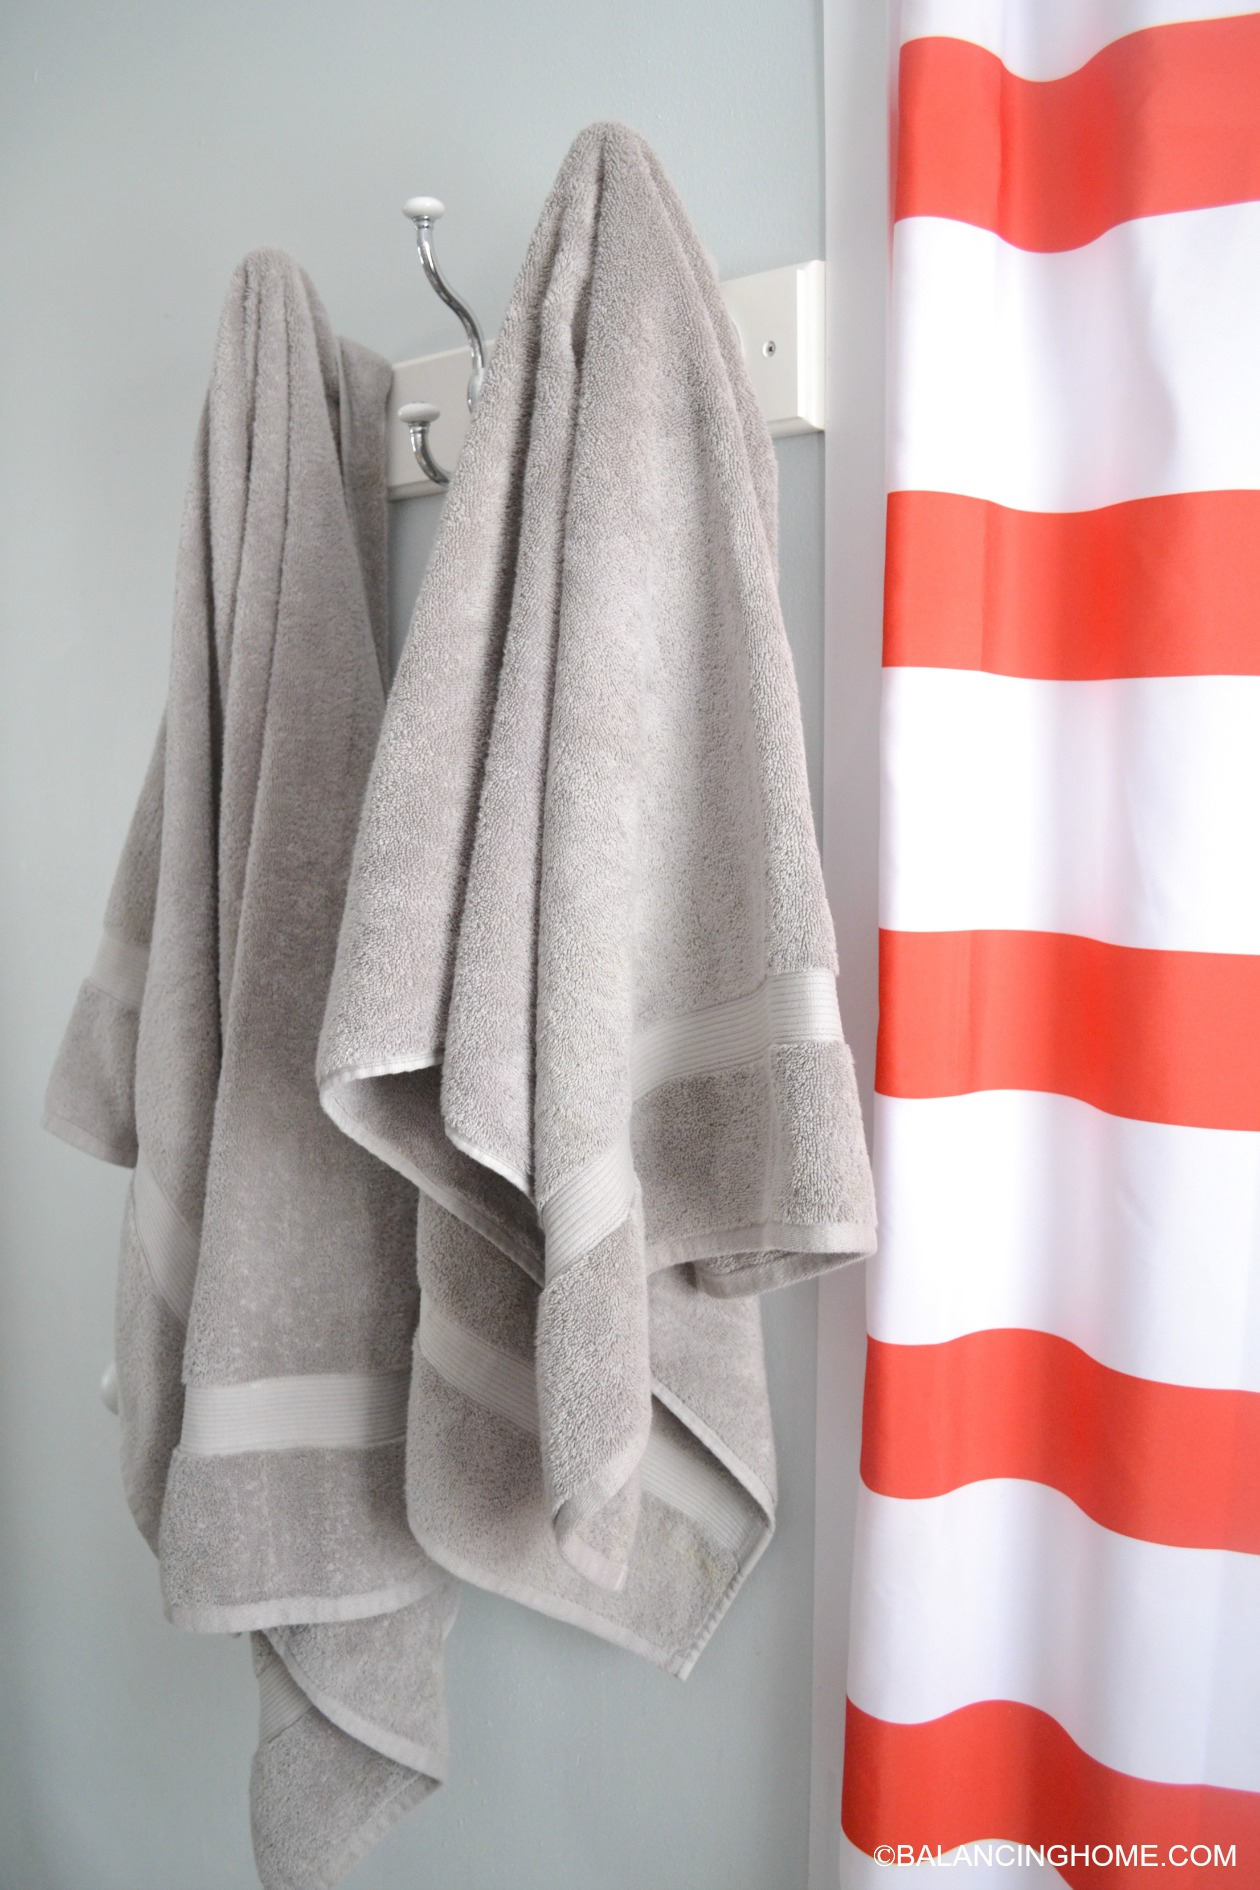 grey white striped shower curtain. cleaning organizing bathroom with pedestal sink towel hooks red white  striped shower curtain